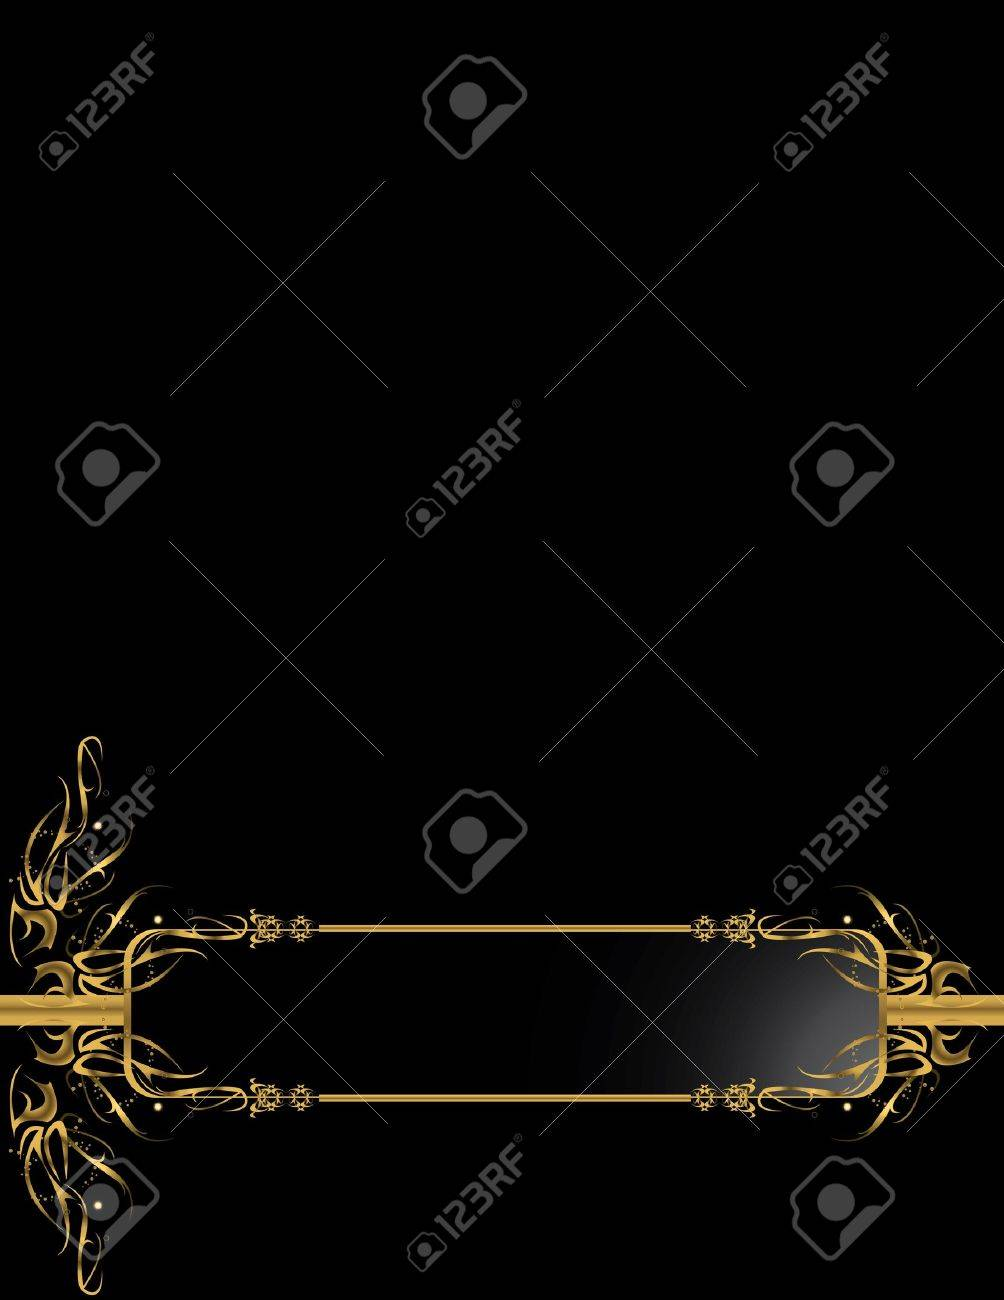 Gold black elegant design on a black background Stock Photo - 4106054